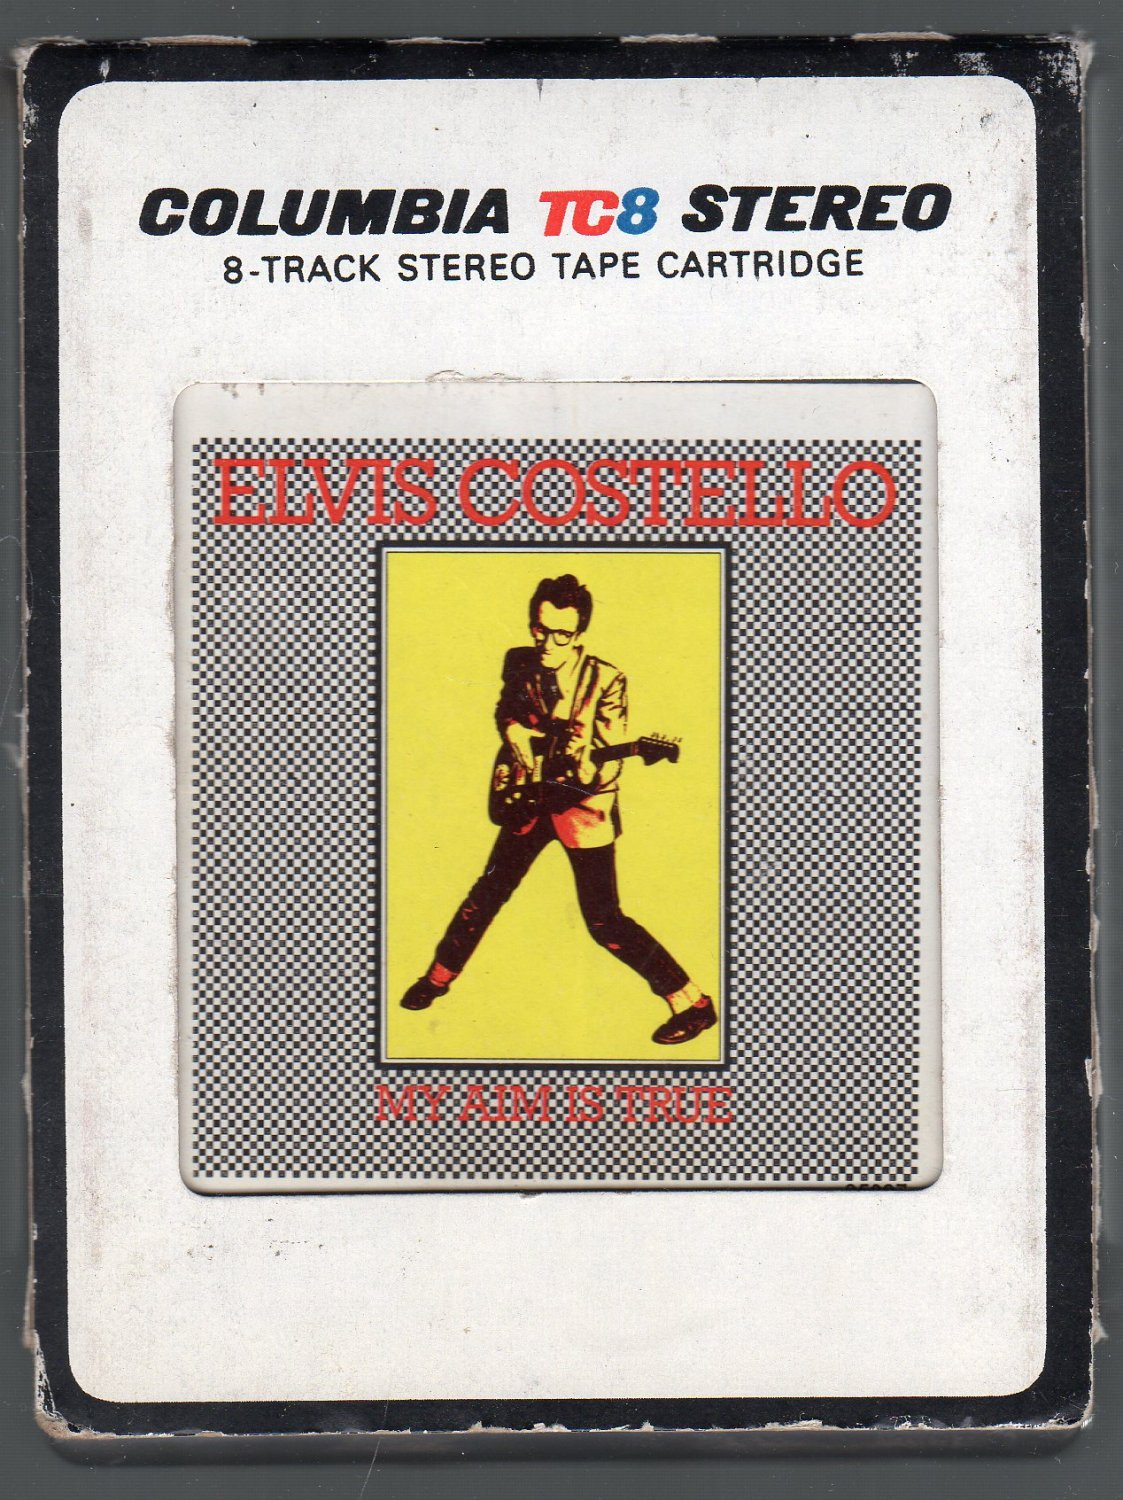 Elvis Costello - My Aim Is True Debut SOLD 8-track tape